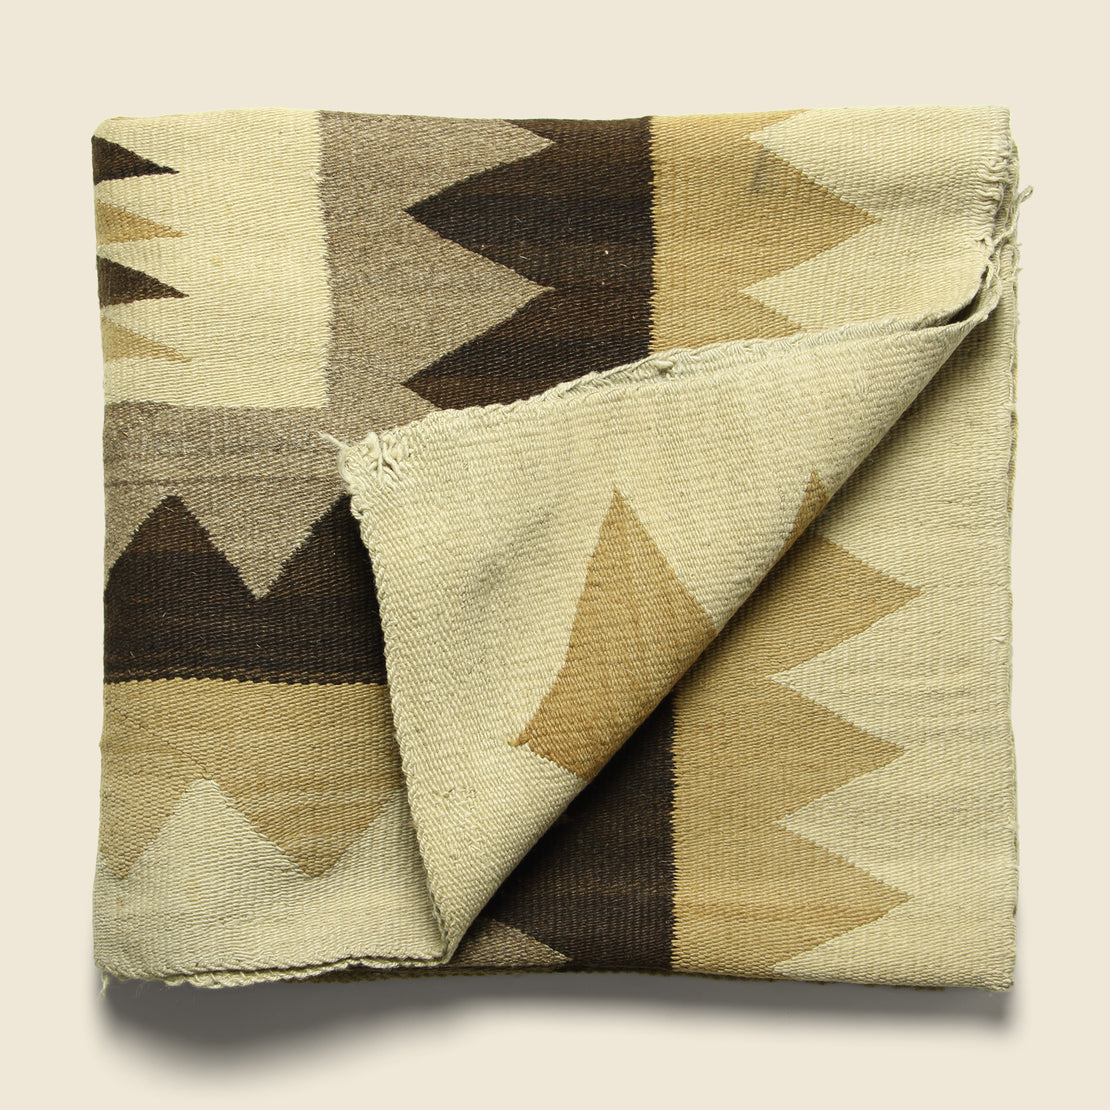 Zig-Zag Hand-Woven Navajo Wool Rug - Natural Brown